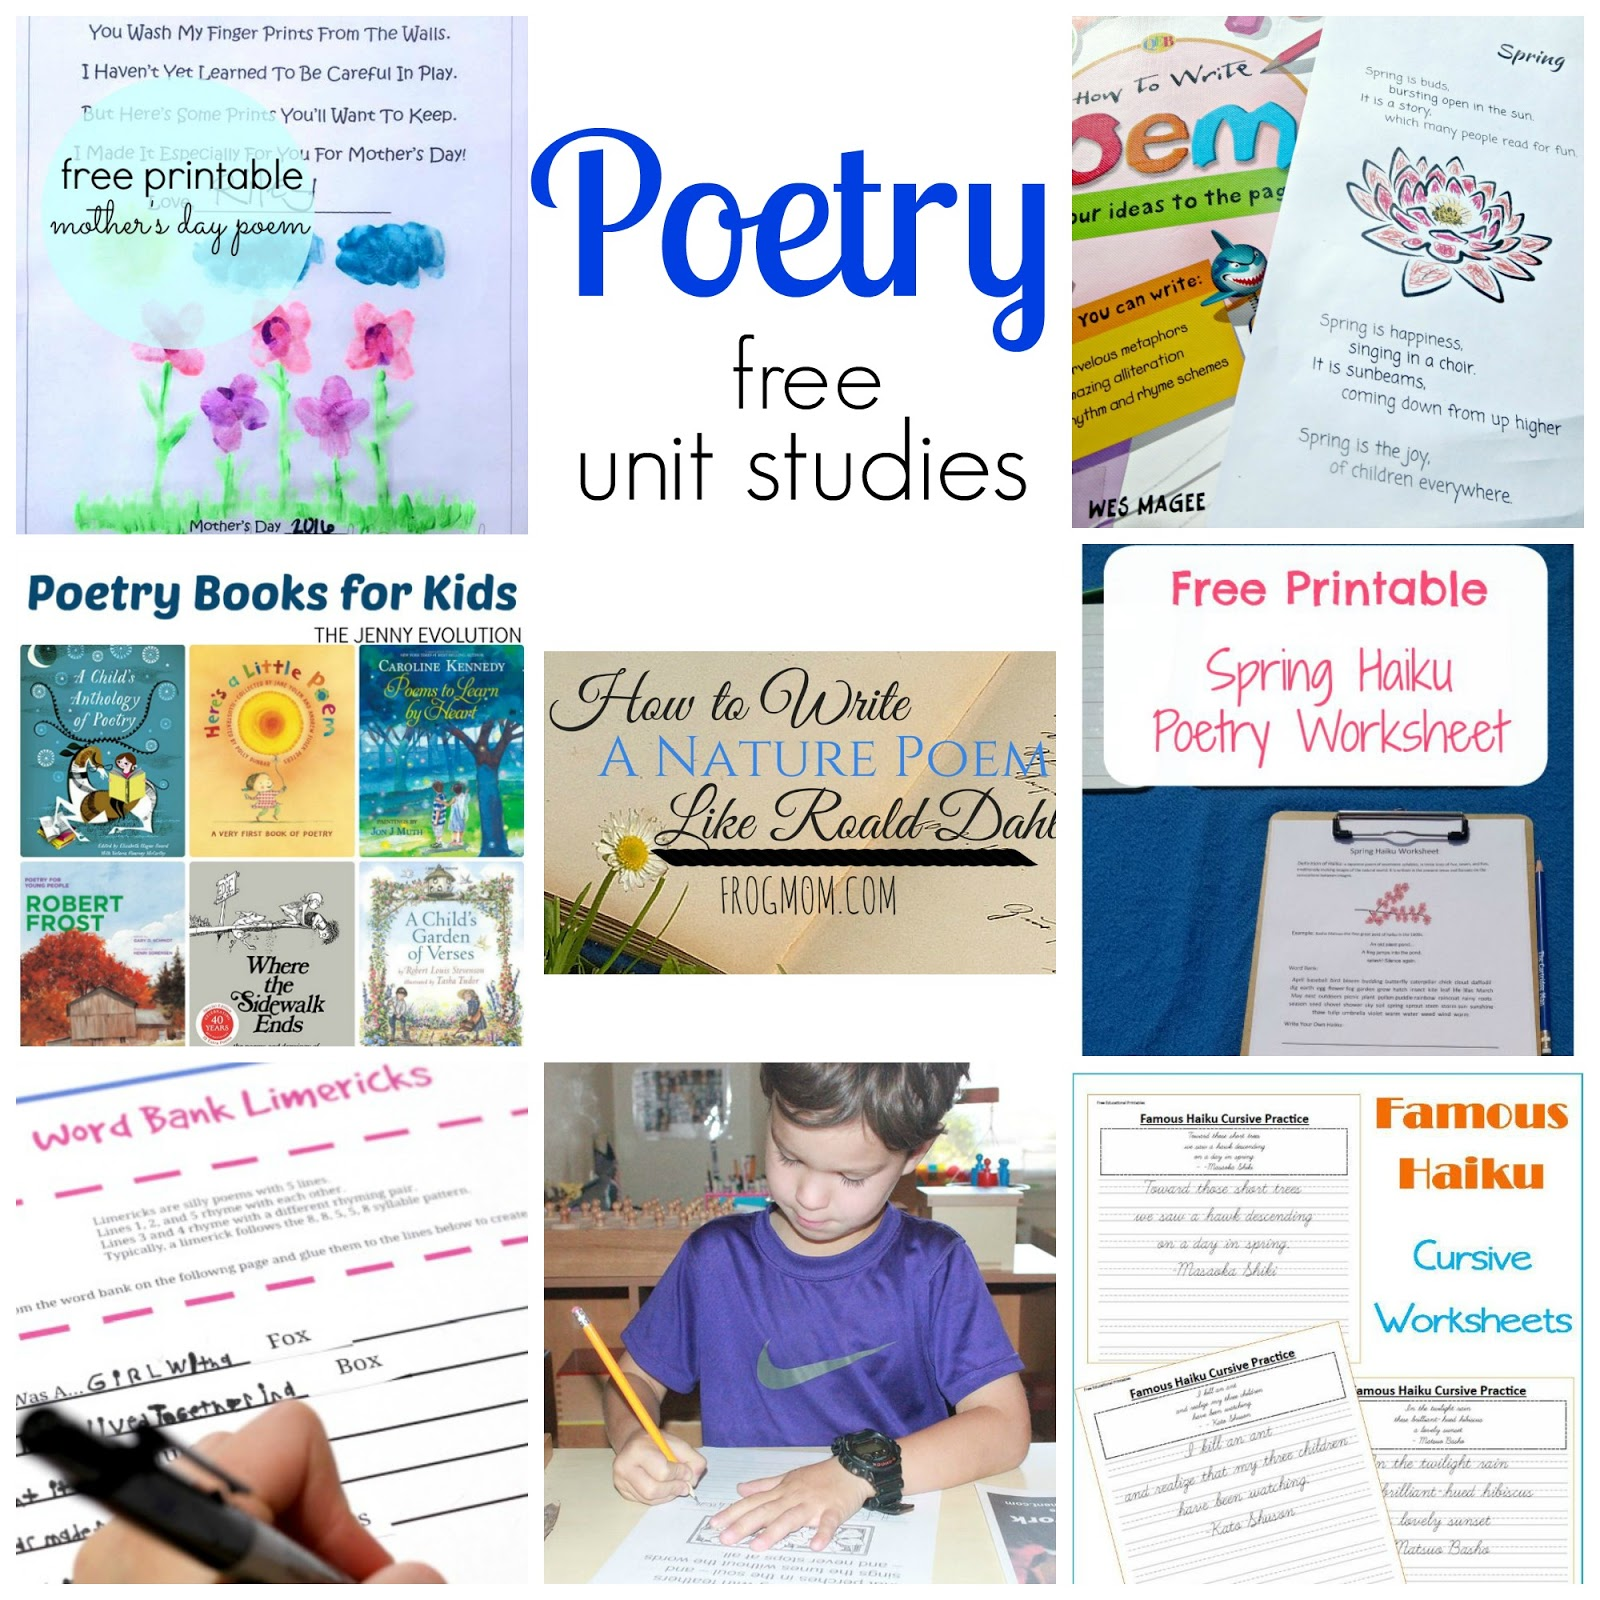 Poetry Writing For Kids Using Metaphors